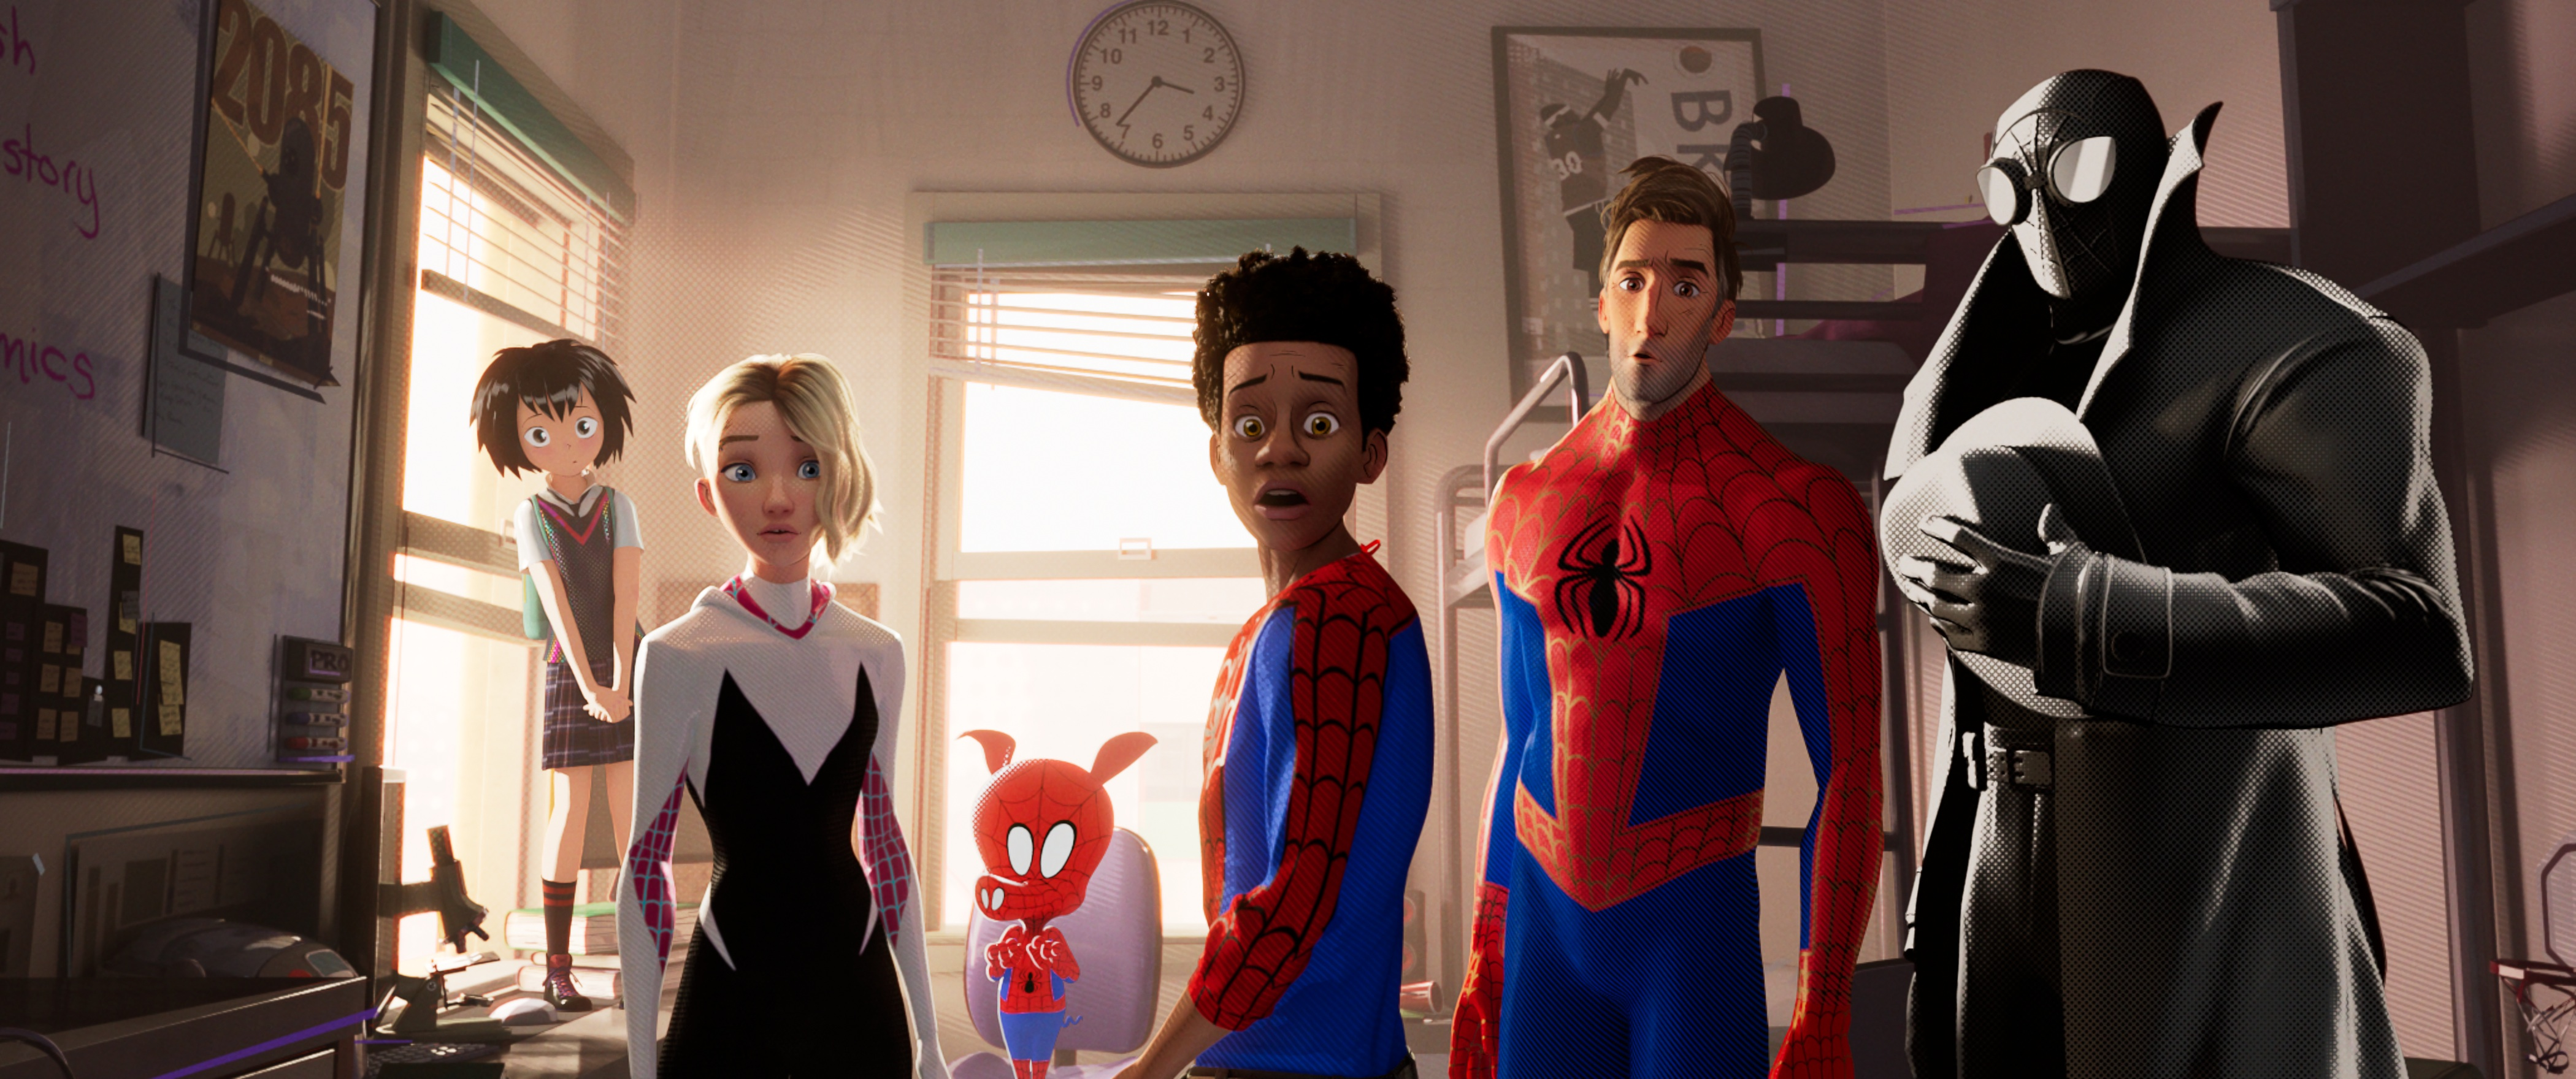 12 Family-Friendly Films to Stream Right Now If You Have Kids to Entertain